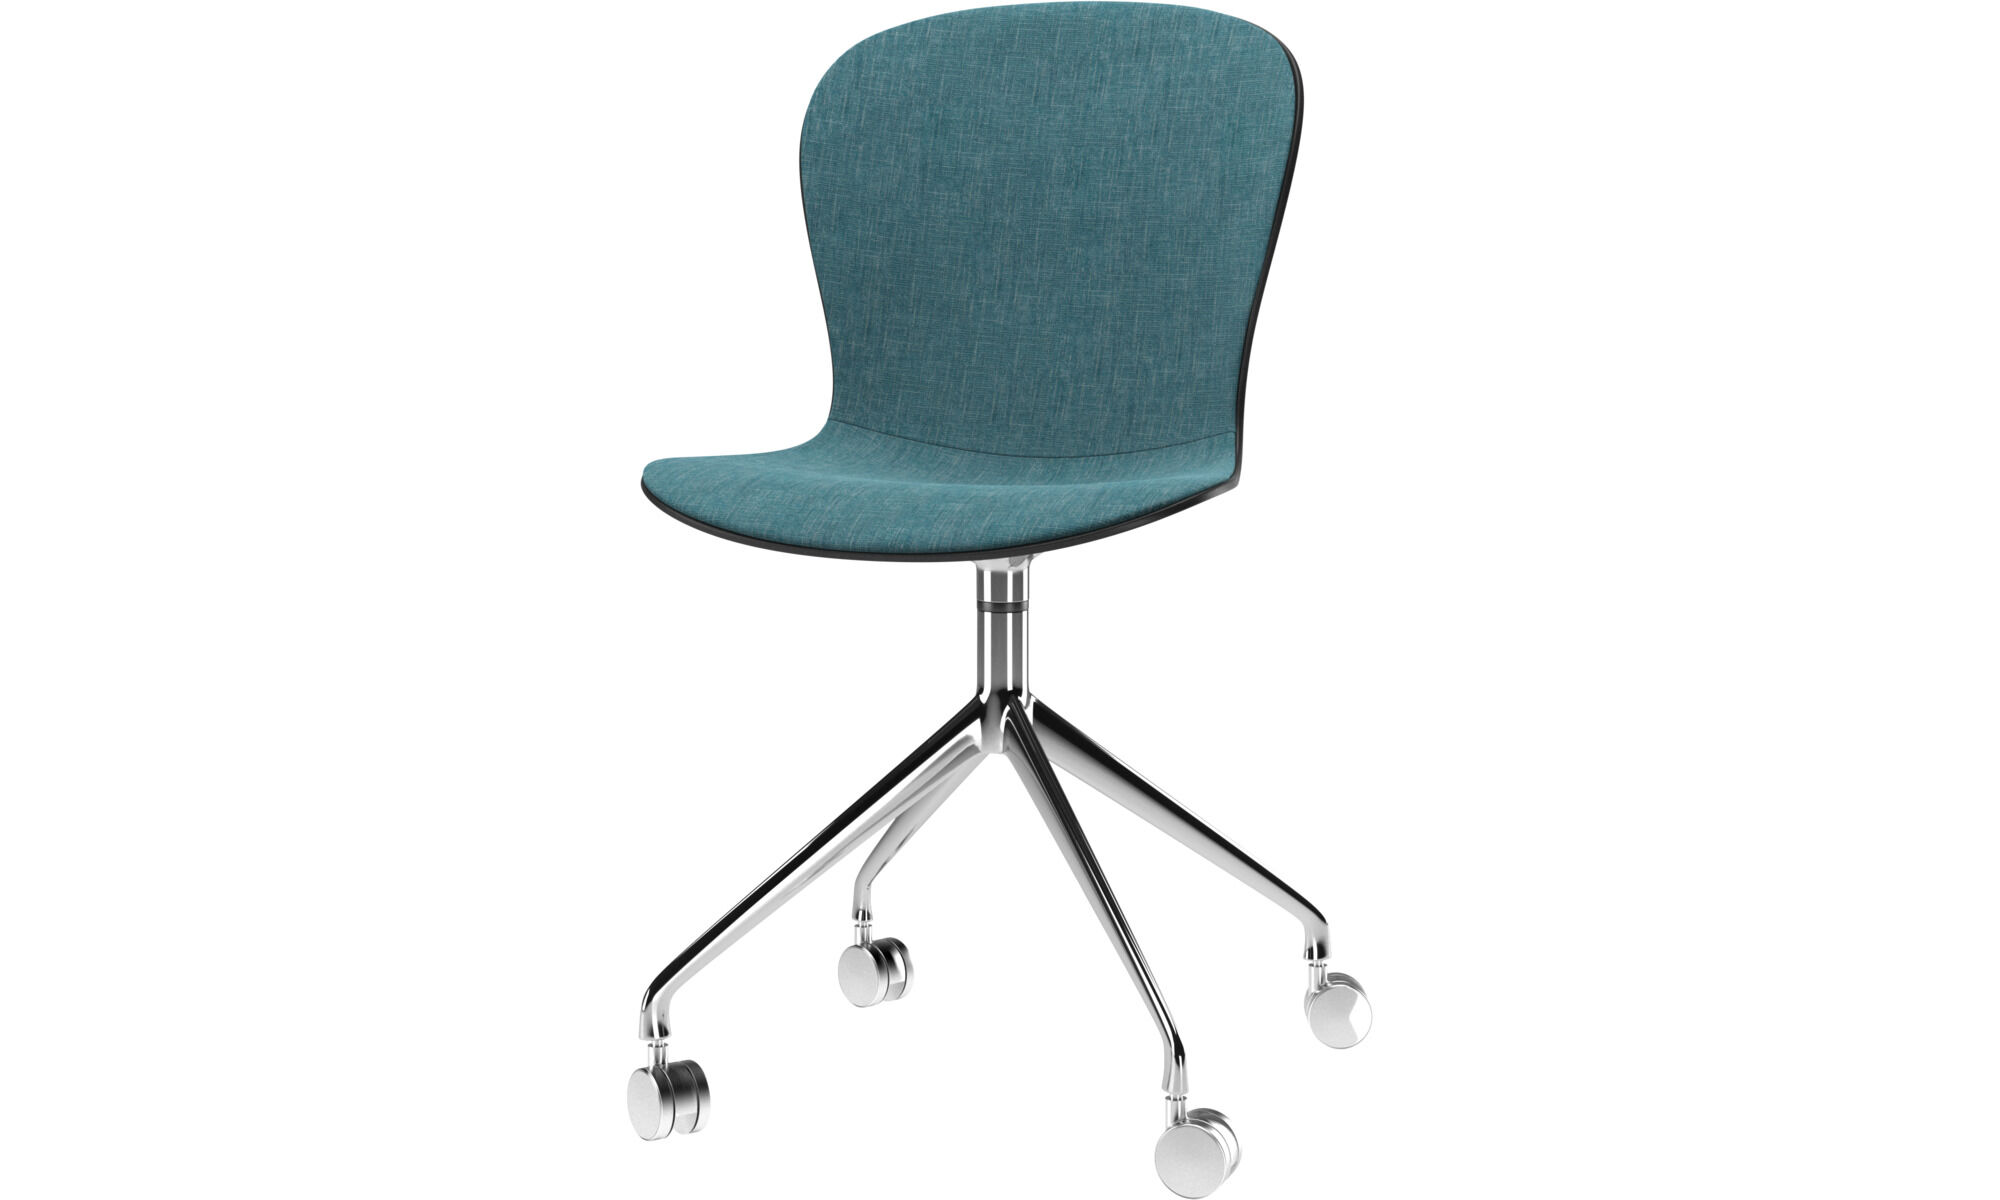 blue office chair what is a shower modern chairs quality design from boconcept dining adelaide with swivel function and wheels fabric